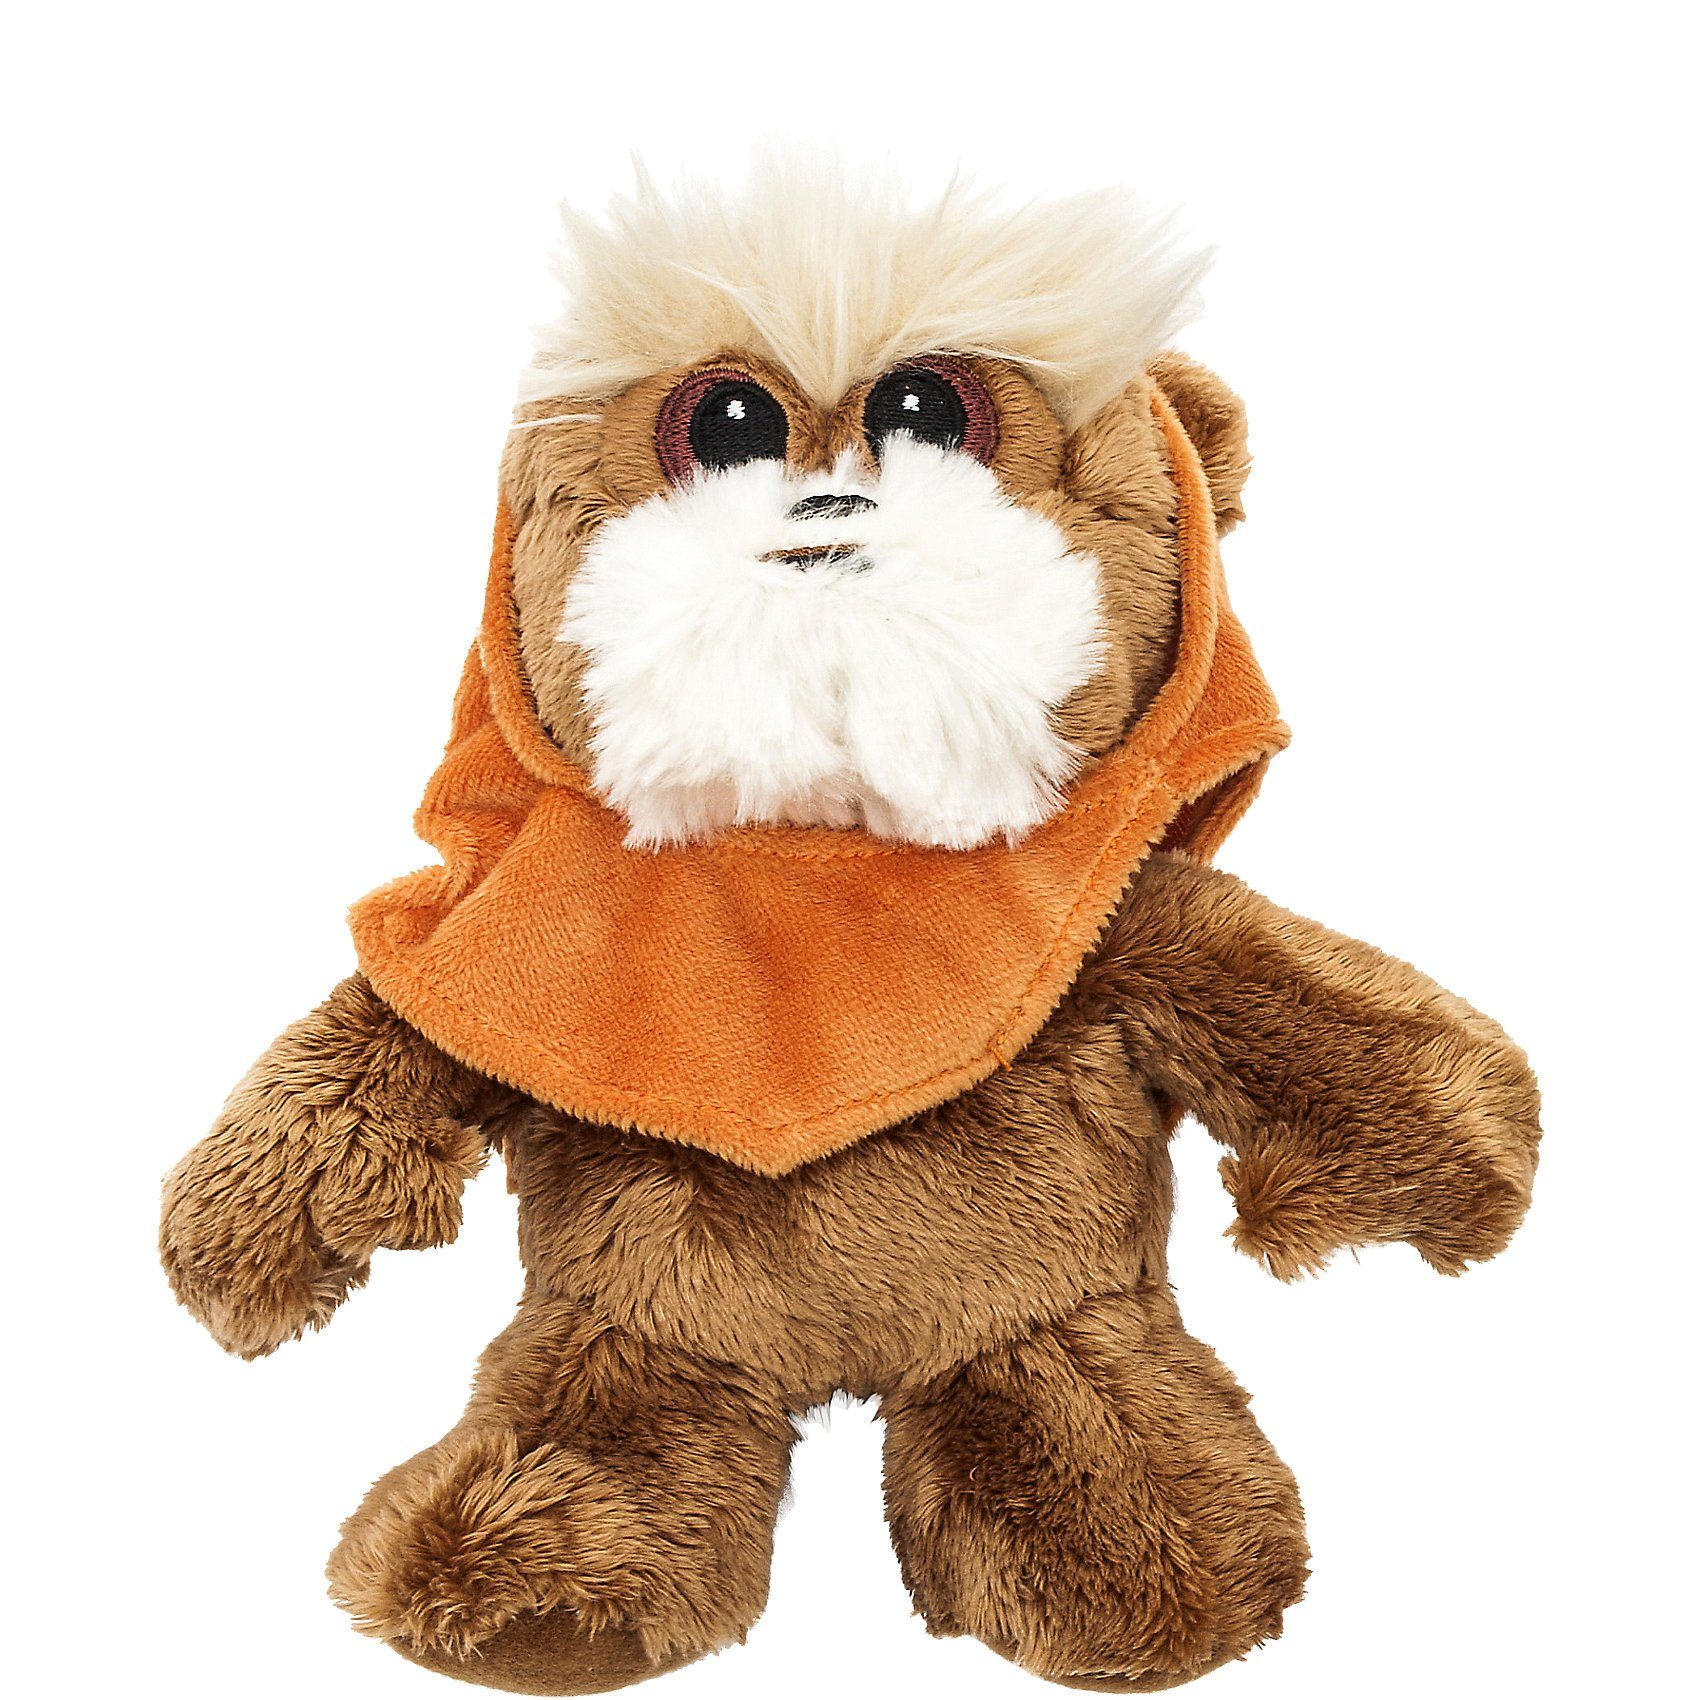 JOY TOY Velboa-Samtplüsch Ewok Star Wars, 20 cm